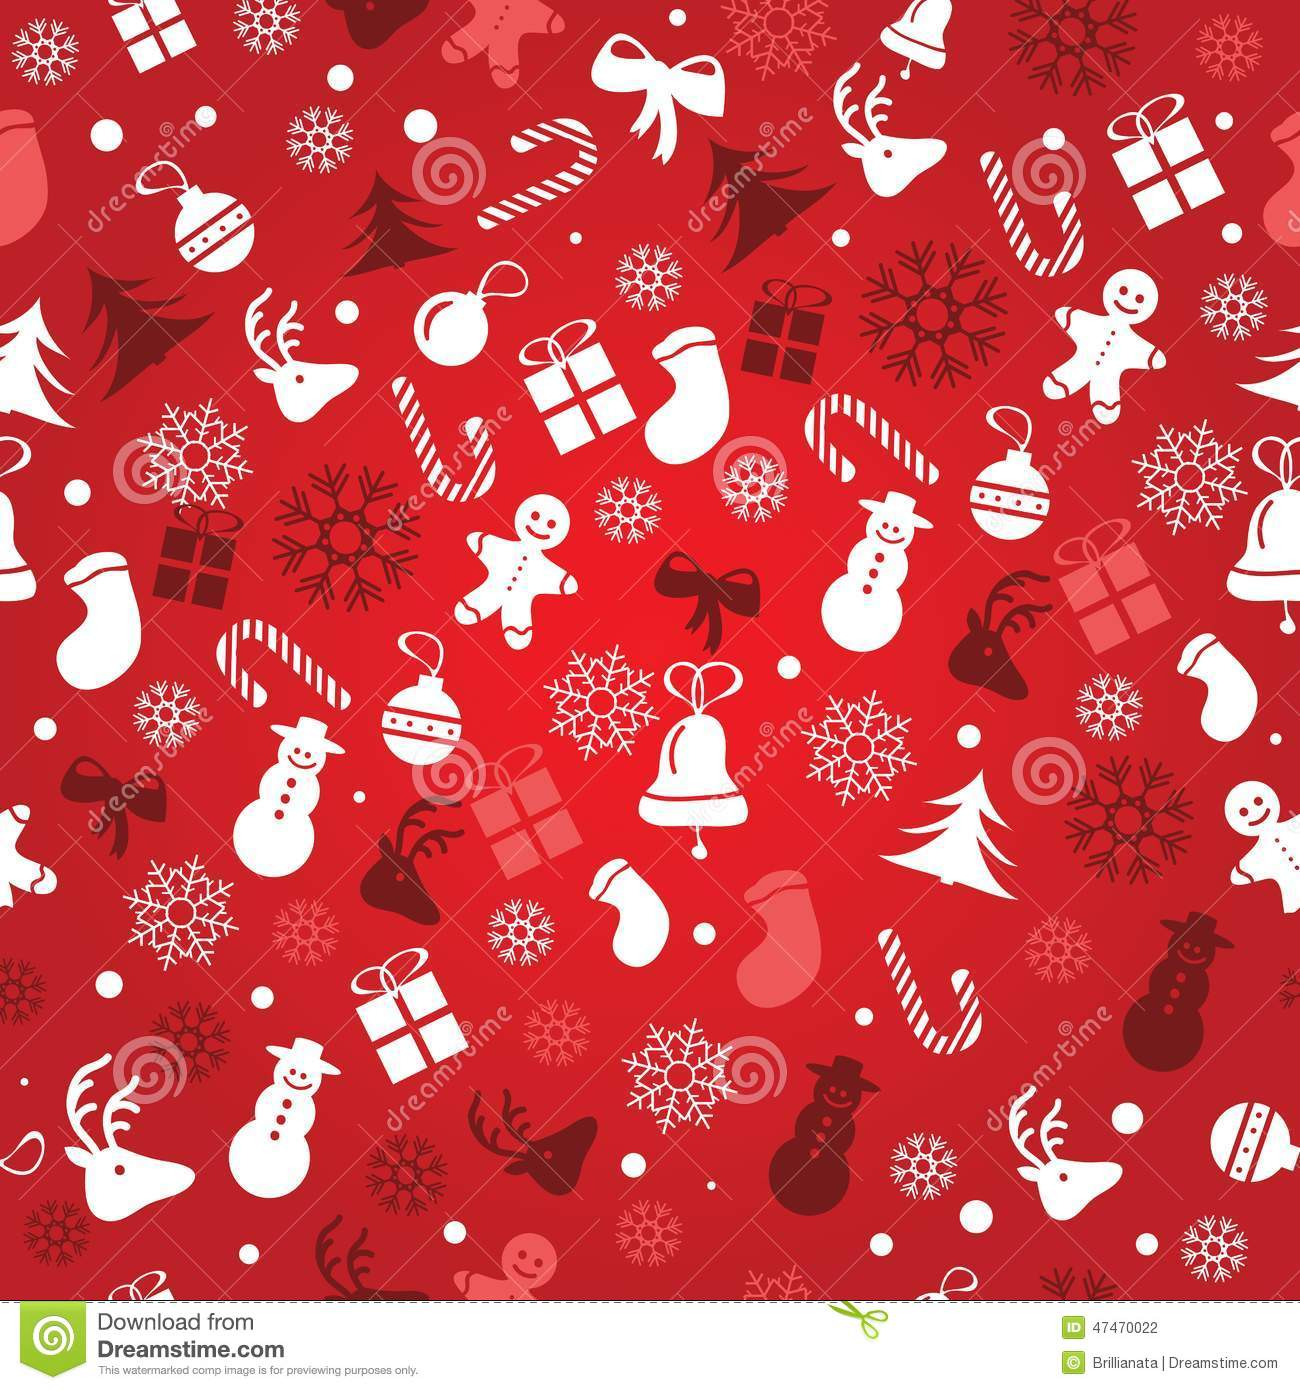 90s Christmas Background.Christmas Background Seamless Tiling Great Choice For Wrapping